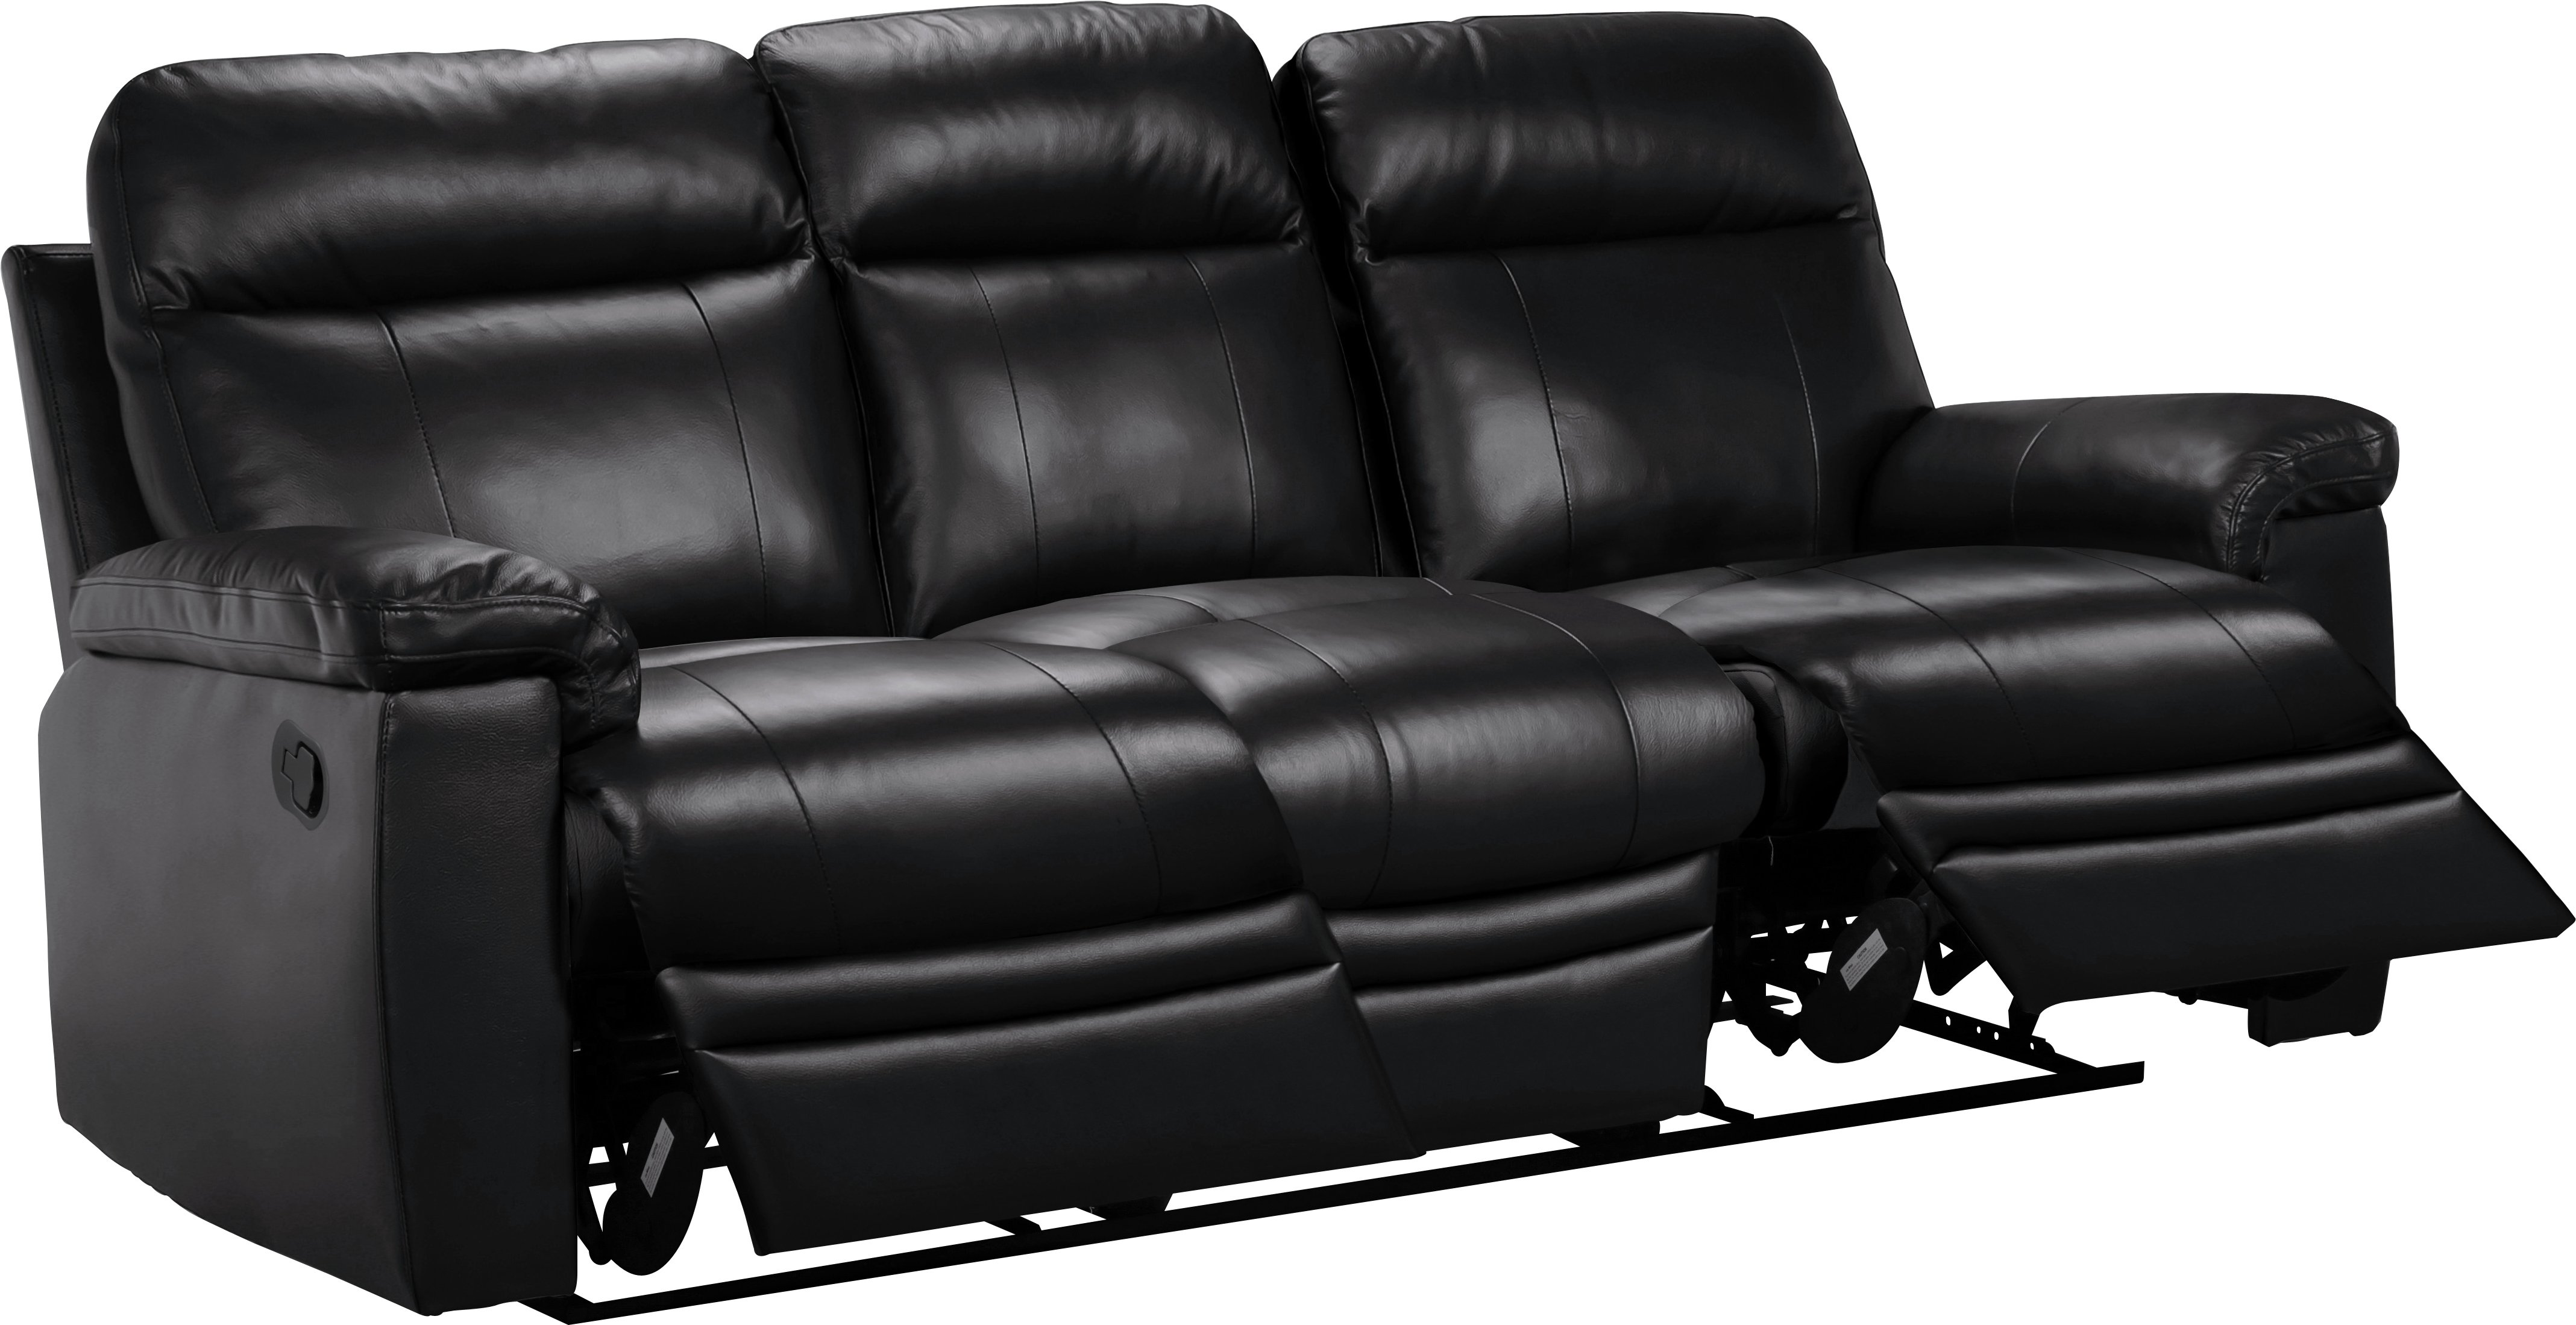 Collection New Paolo 3 Seater Manual Recliner Sofa   Black